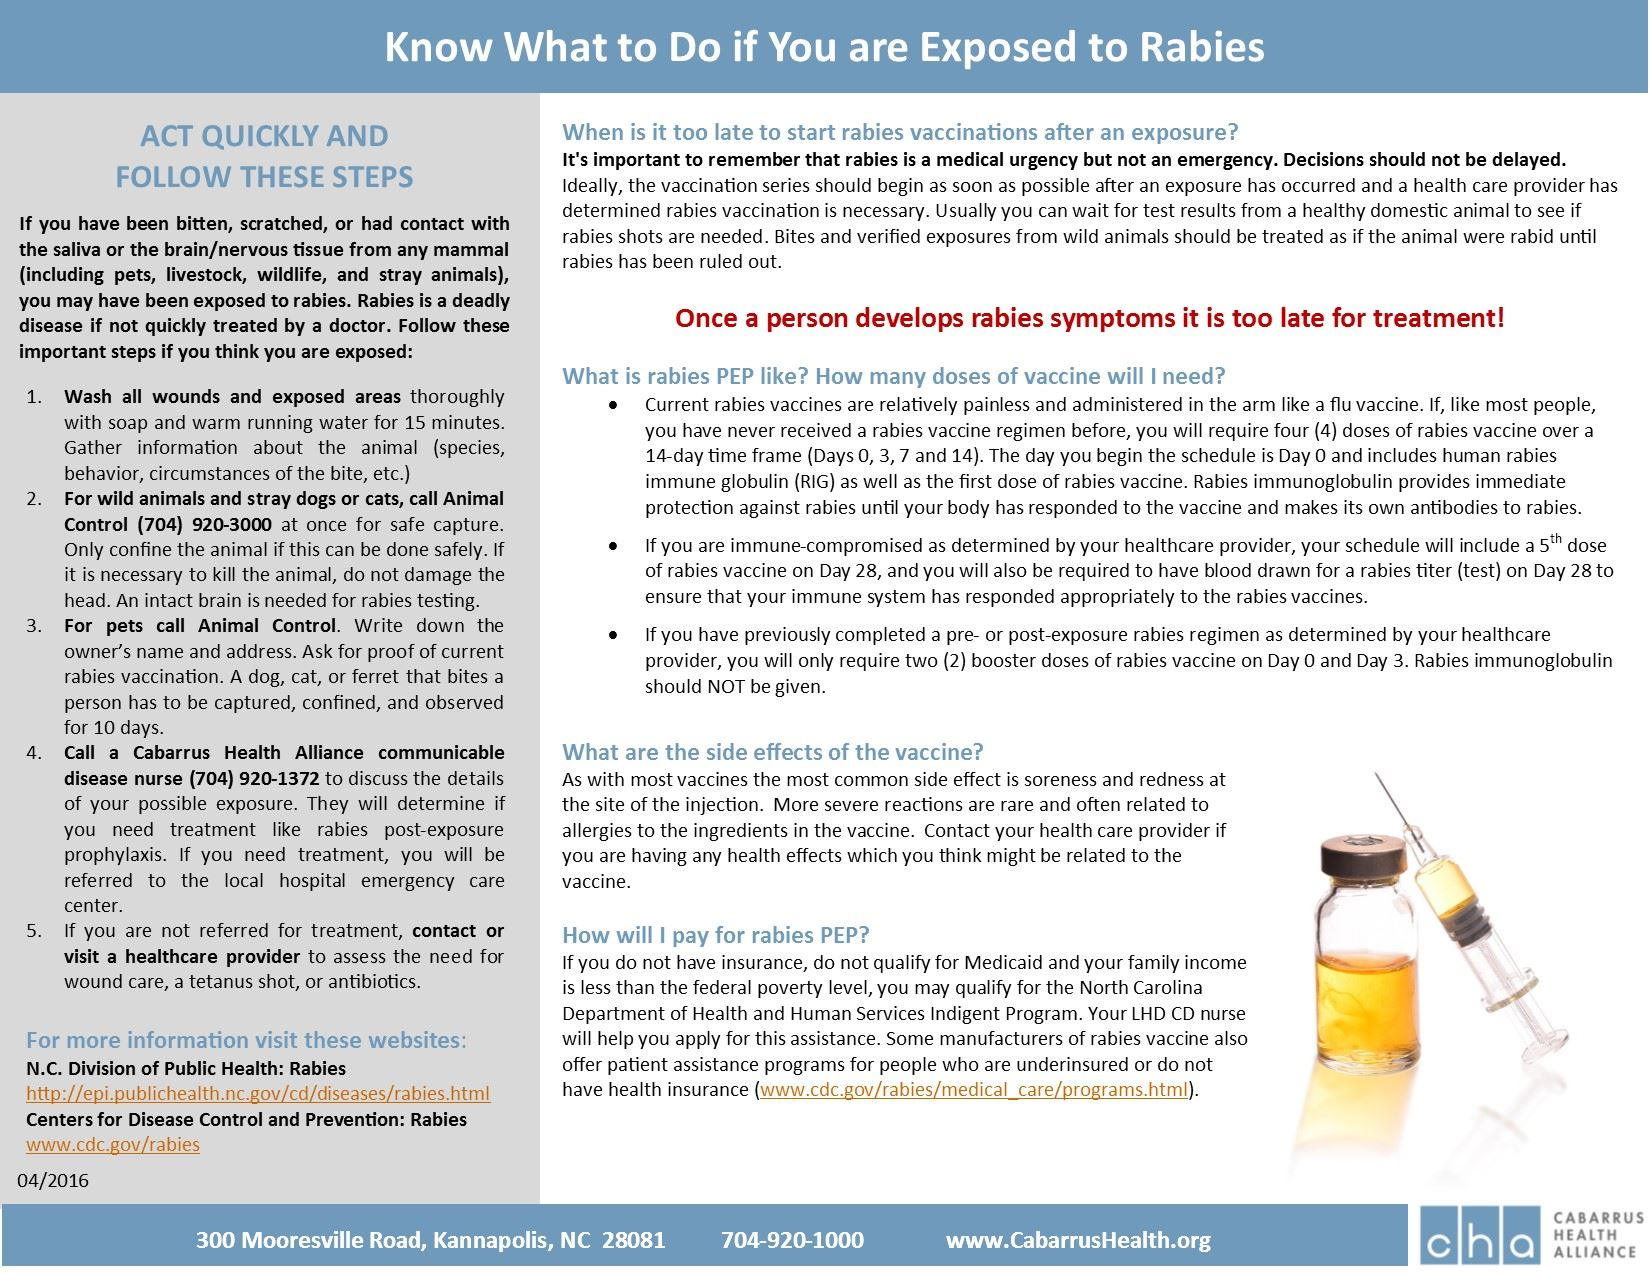 Know What to Do if You Are Exposed to Rabies